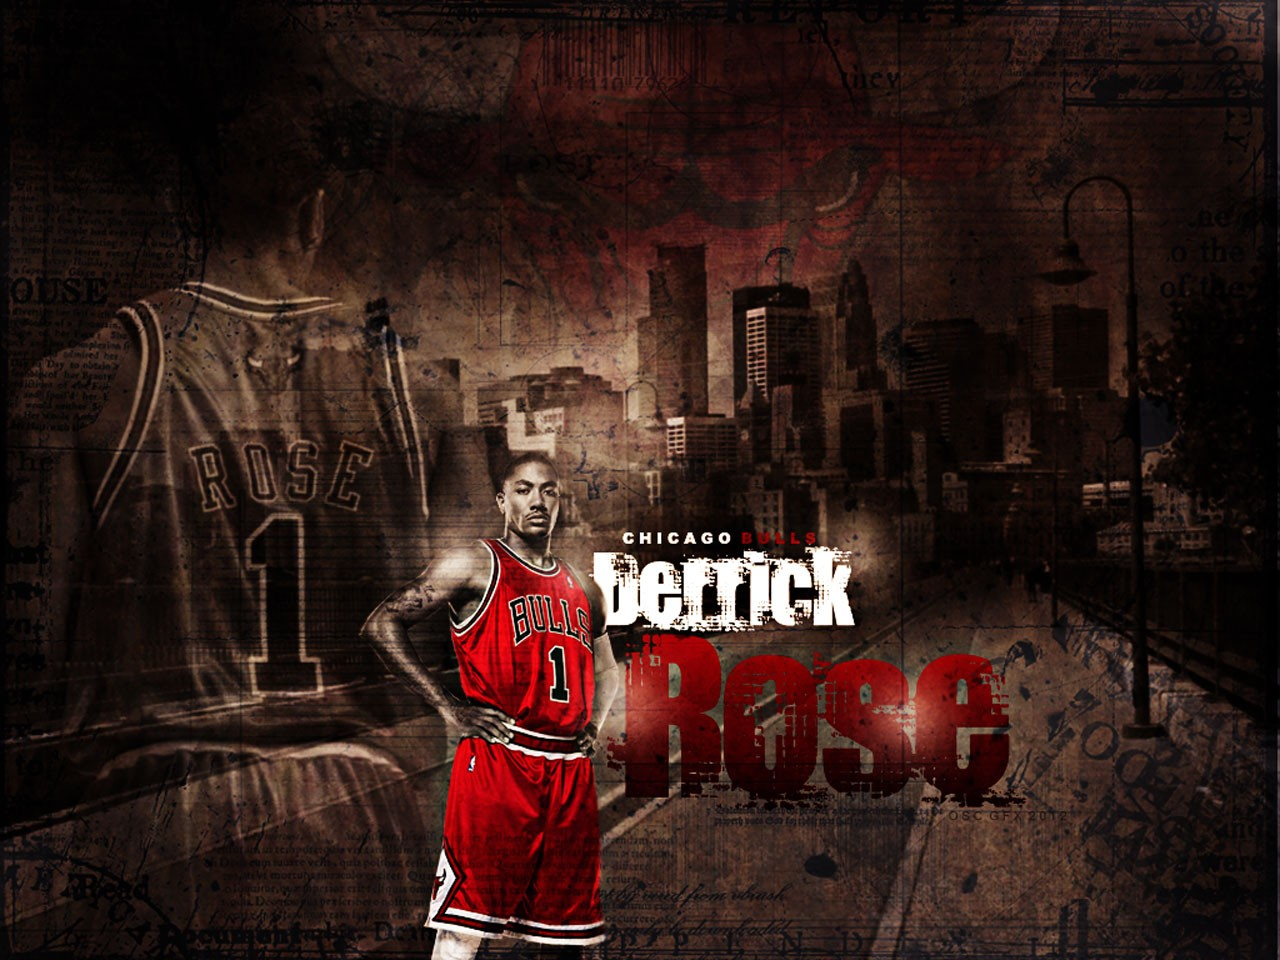 Derrick Rose Chicago Bull Wallpaper HD 8932 Wallpaper Wallpaper 1280x960